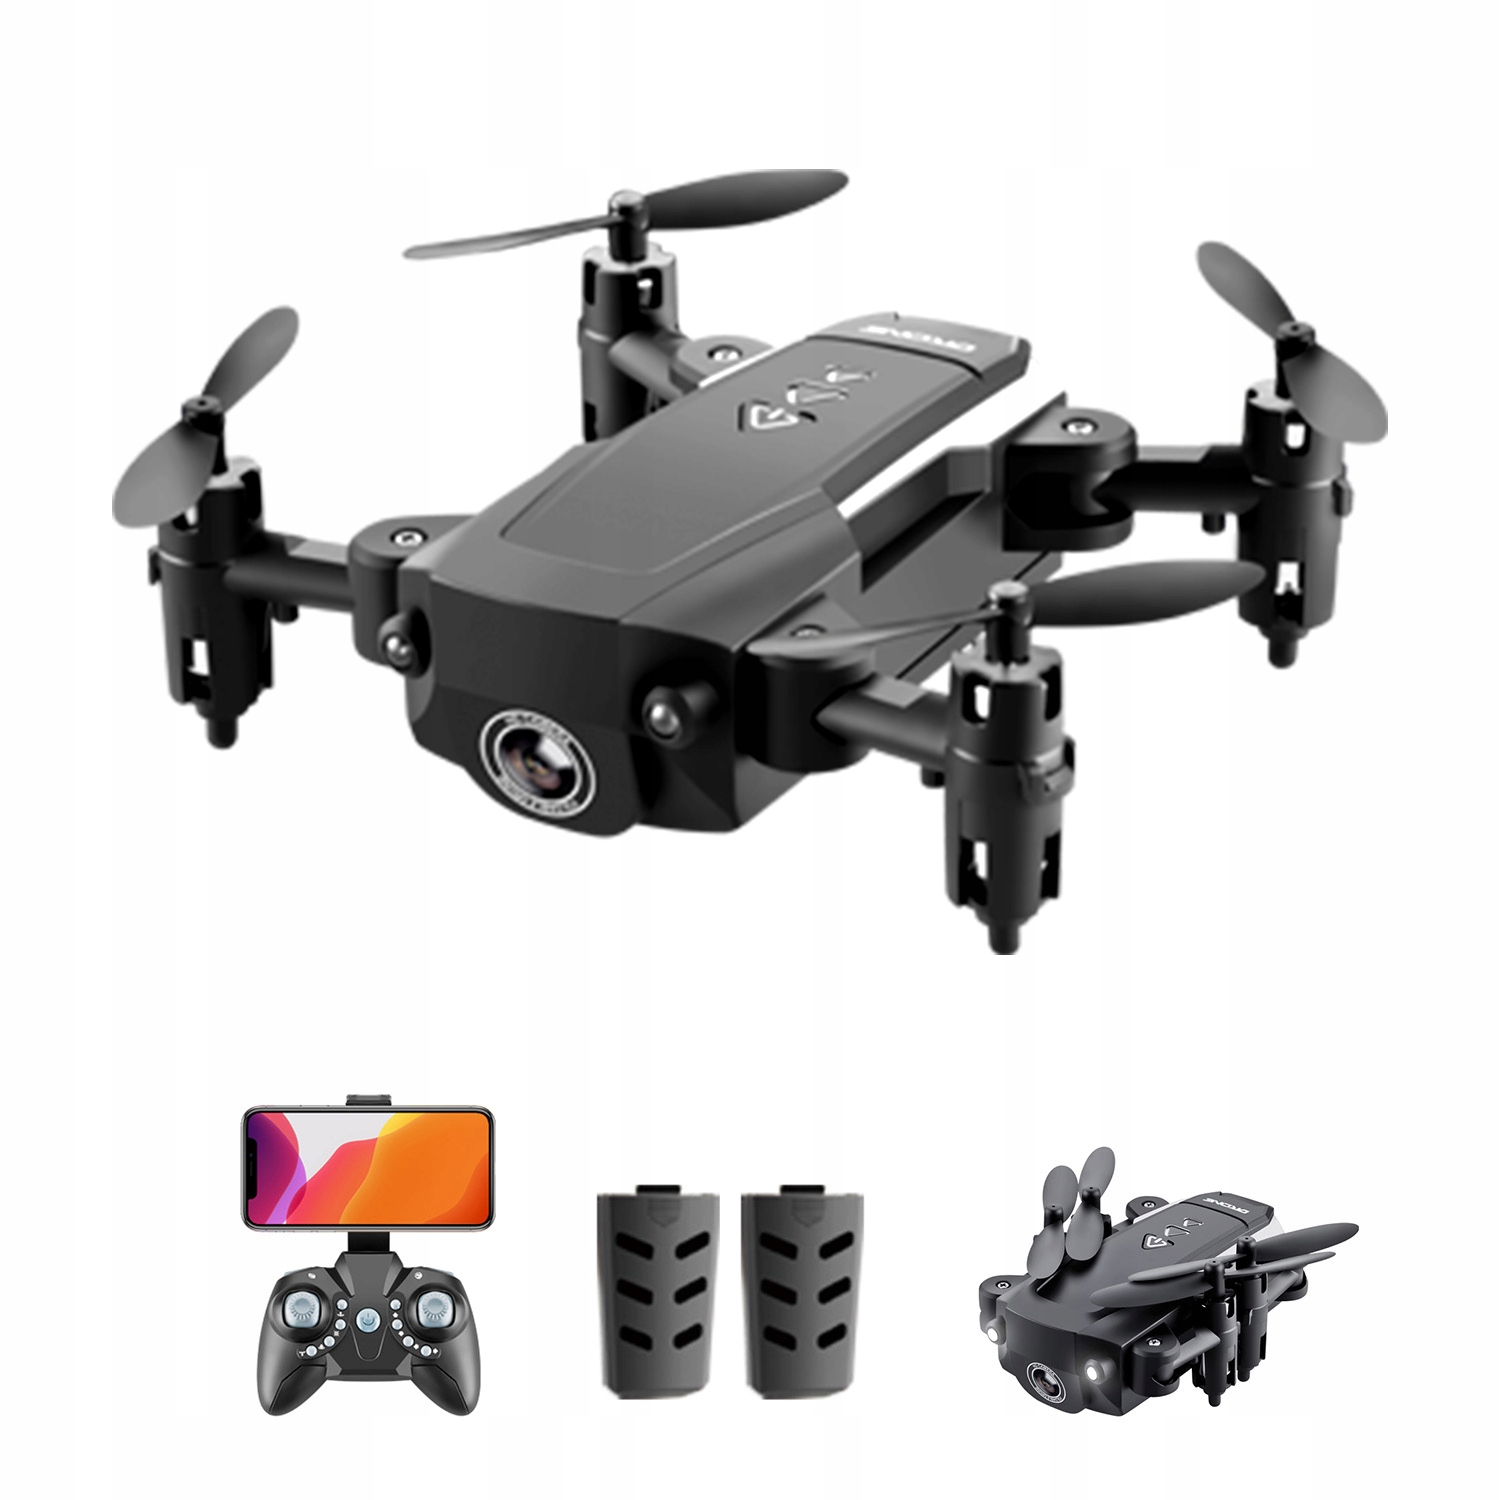 Item The WLRC KK8 UAV drone with 1080P CAMERA with 2 battery